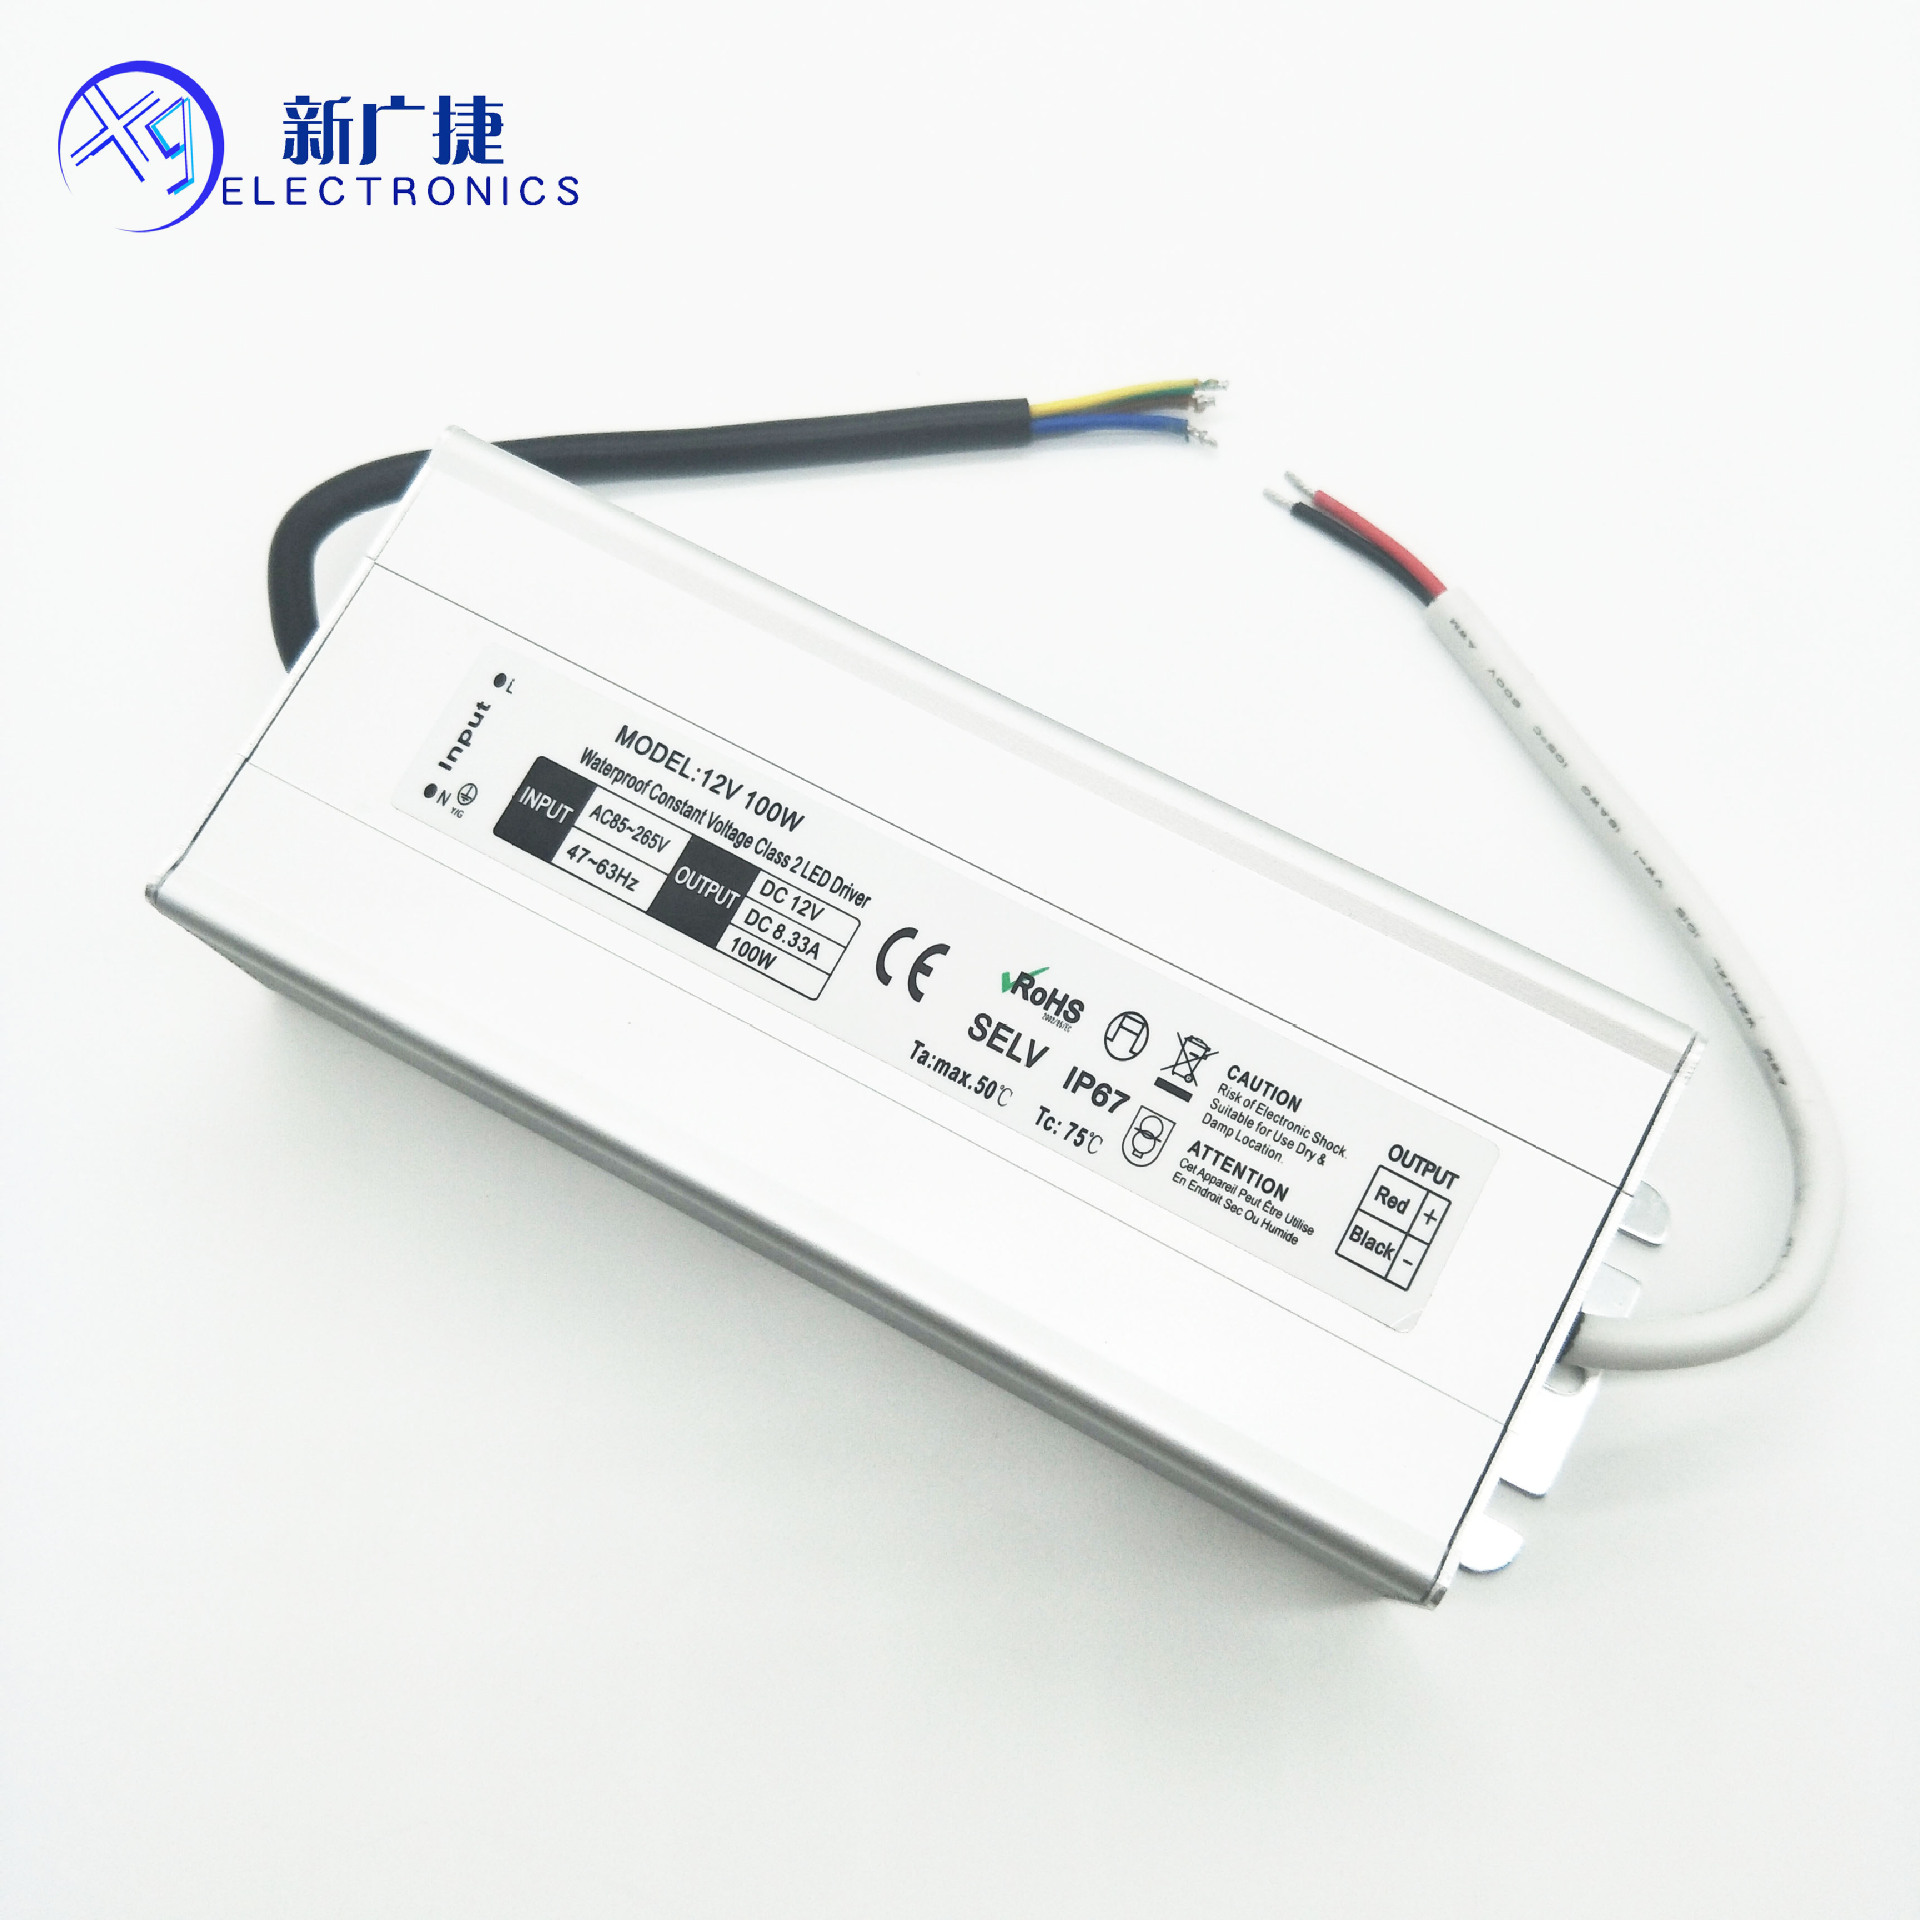 XINGUANGJIE 12v100w led waterproof power supply constant voltage driving street lamp switch power IP